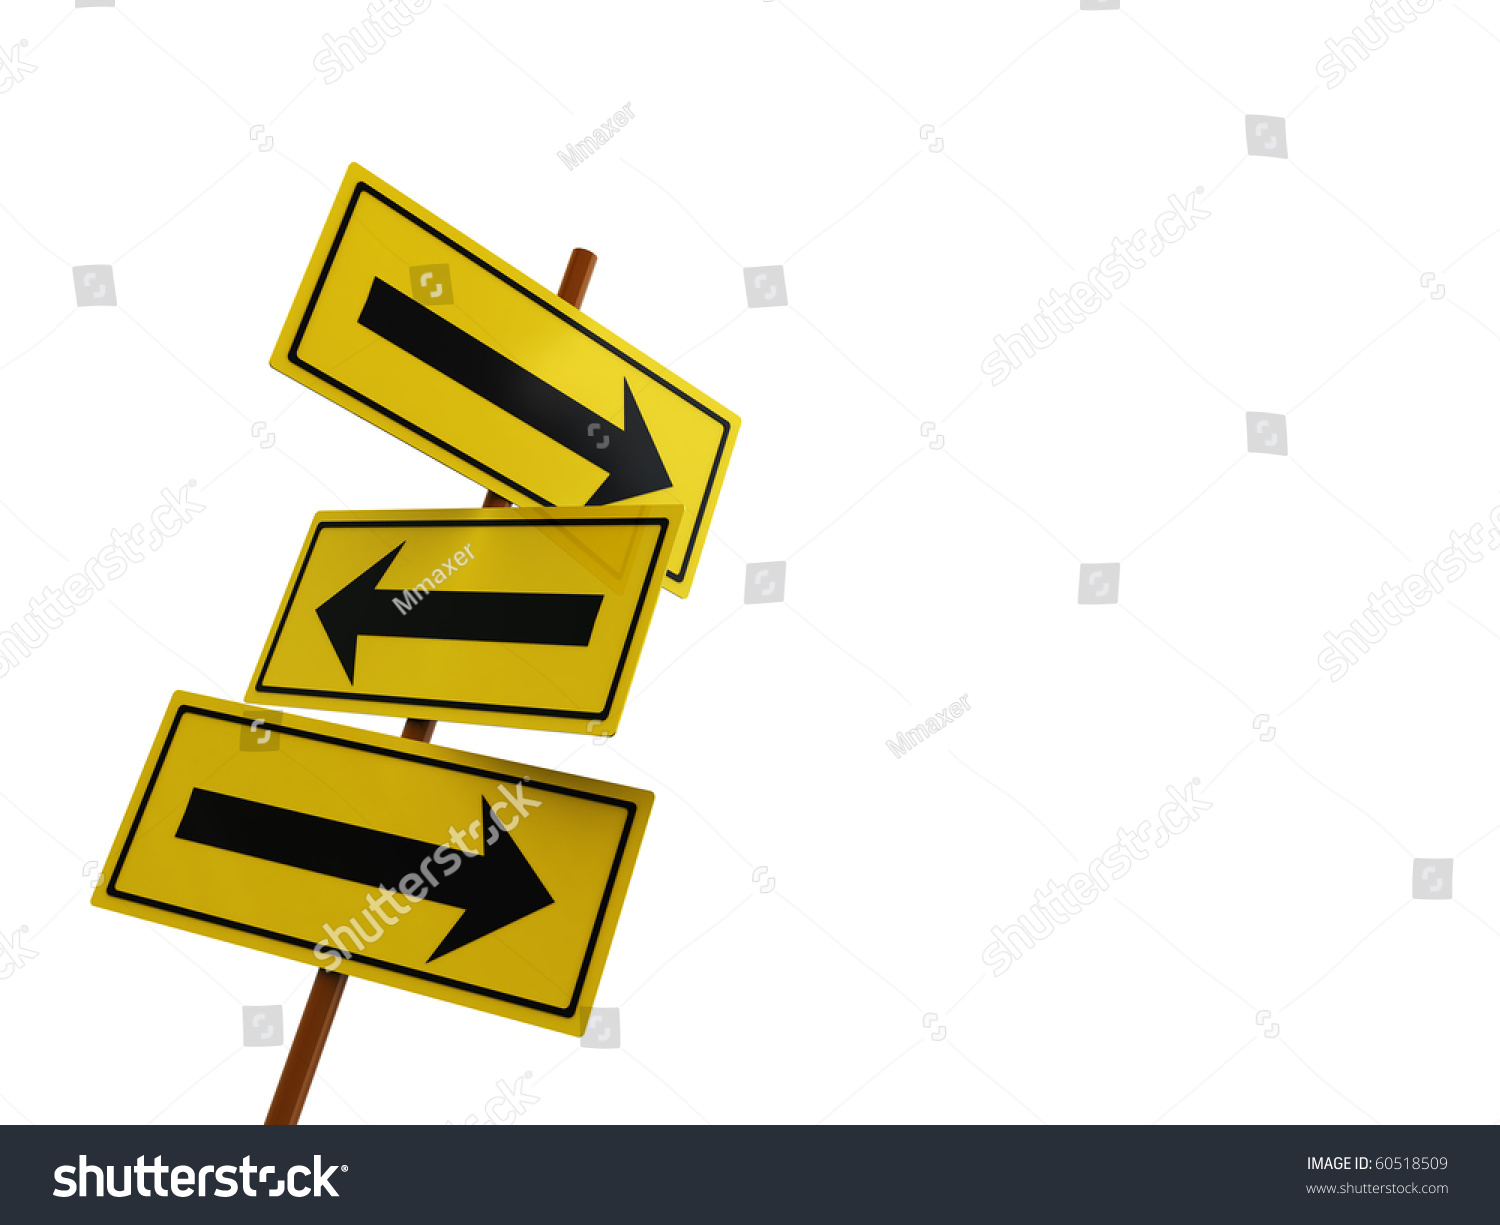 Abstract 3d illustration white background index stock illustration abstract 3d illustration of white background with index sign at left side biocorpaavc Gallery